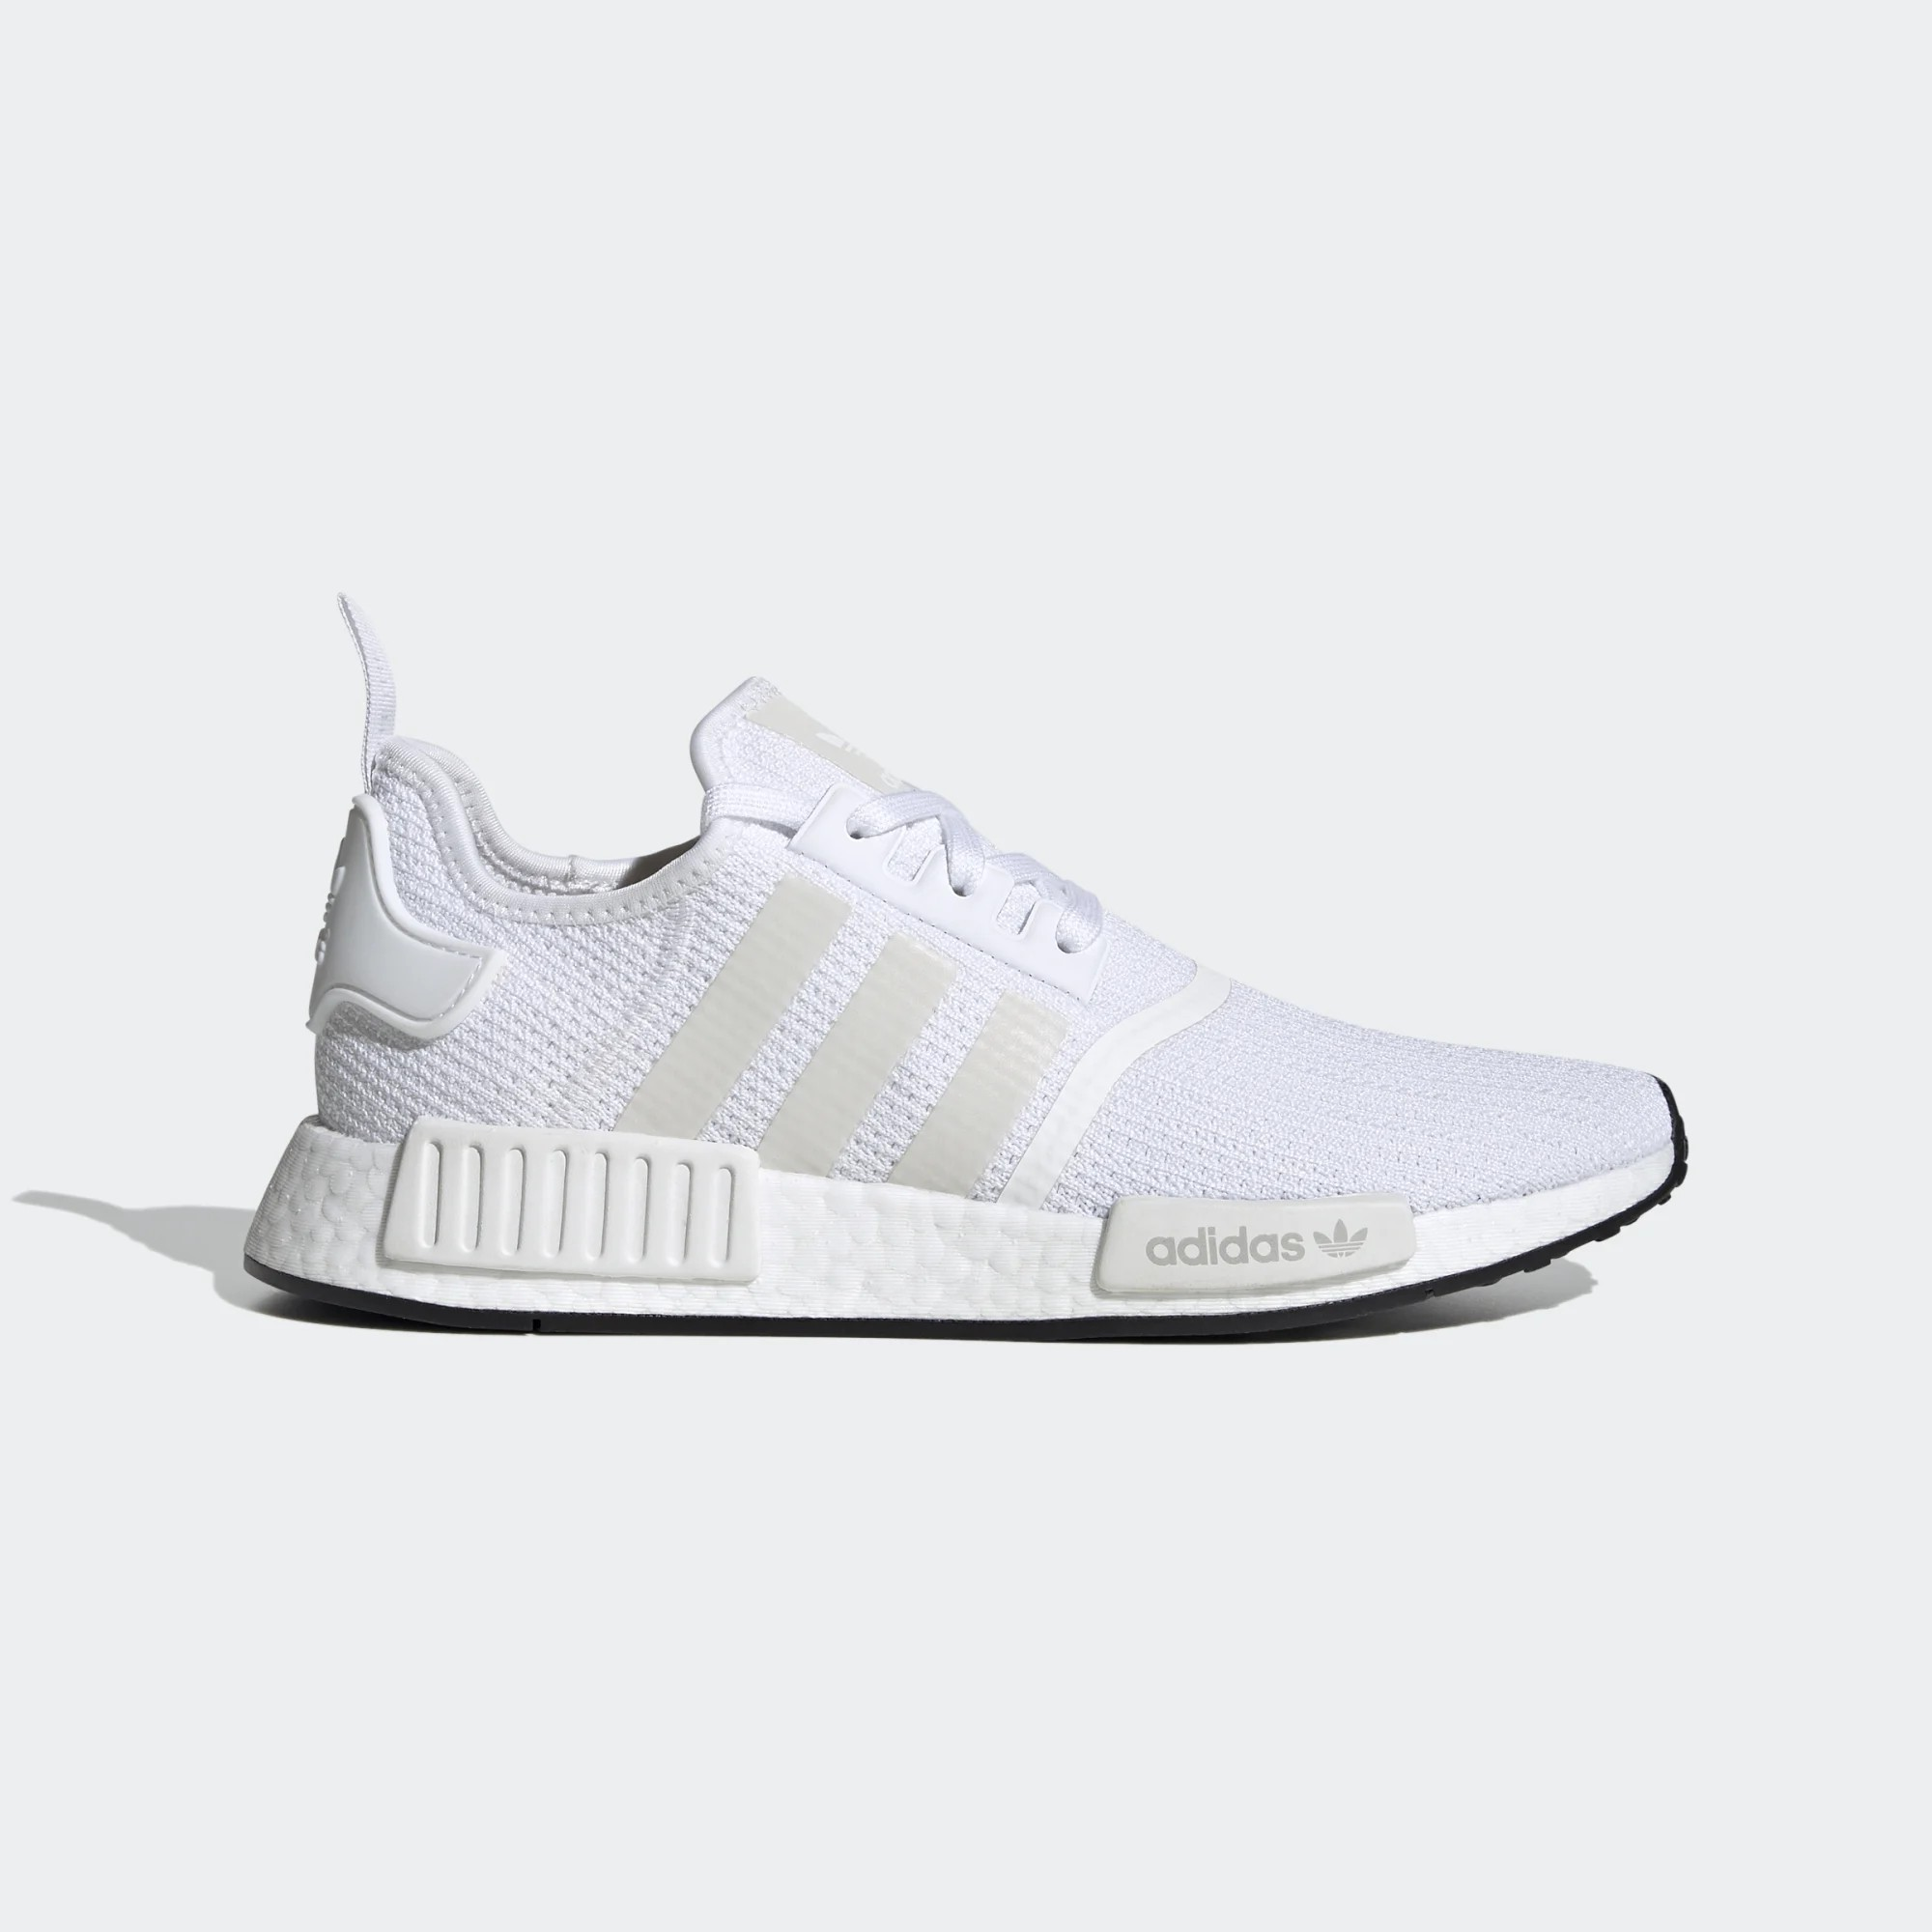 adidas NMD_R1 Shoes - White FV8151